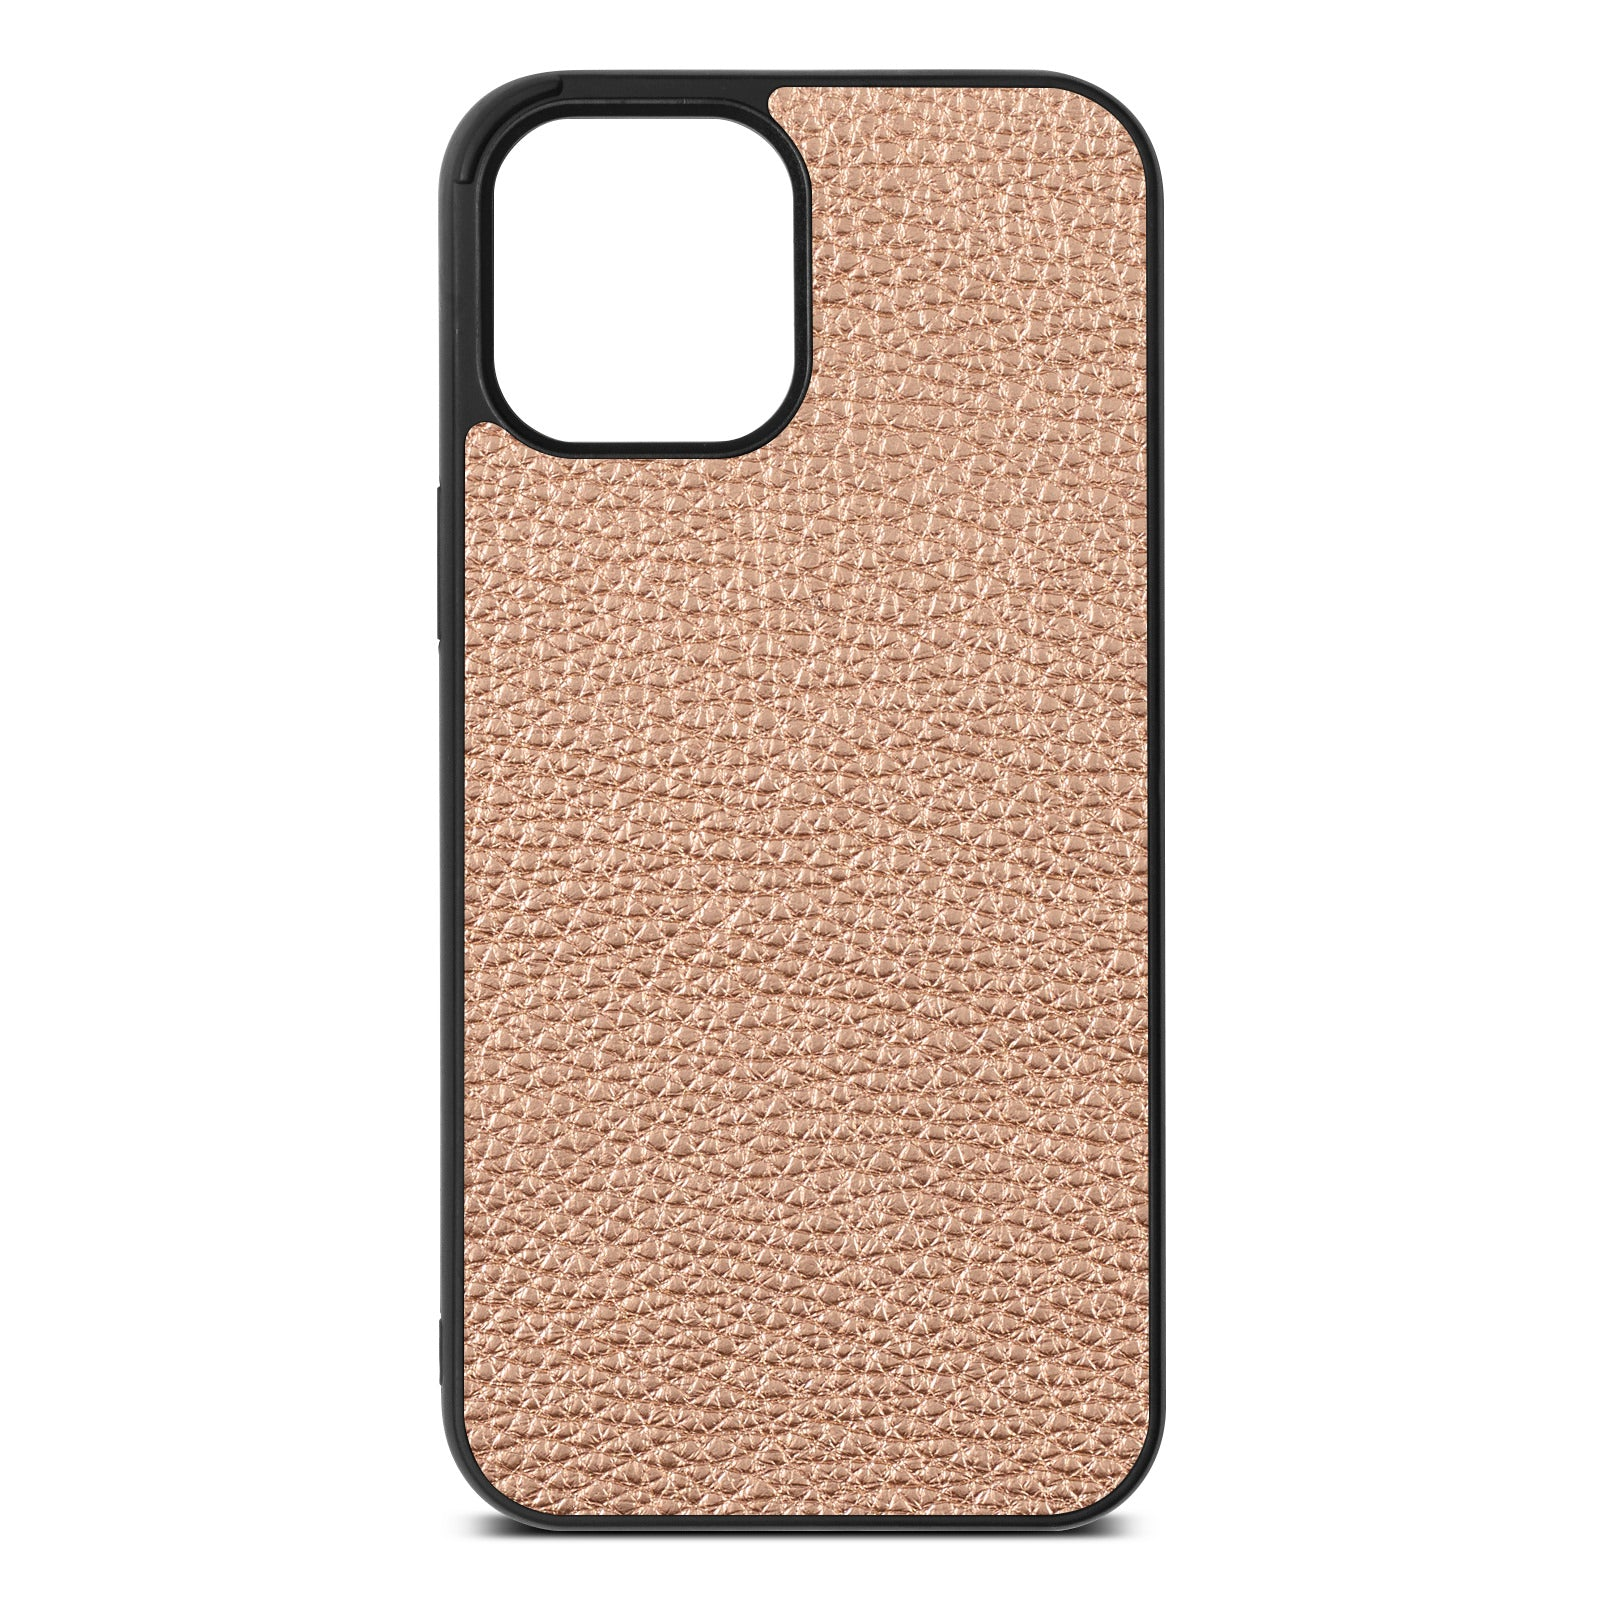 Blank iPhone 12 Pro Max Rose Gold Pebble Leather Case